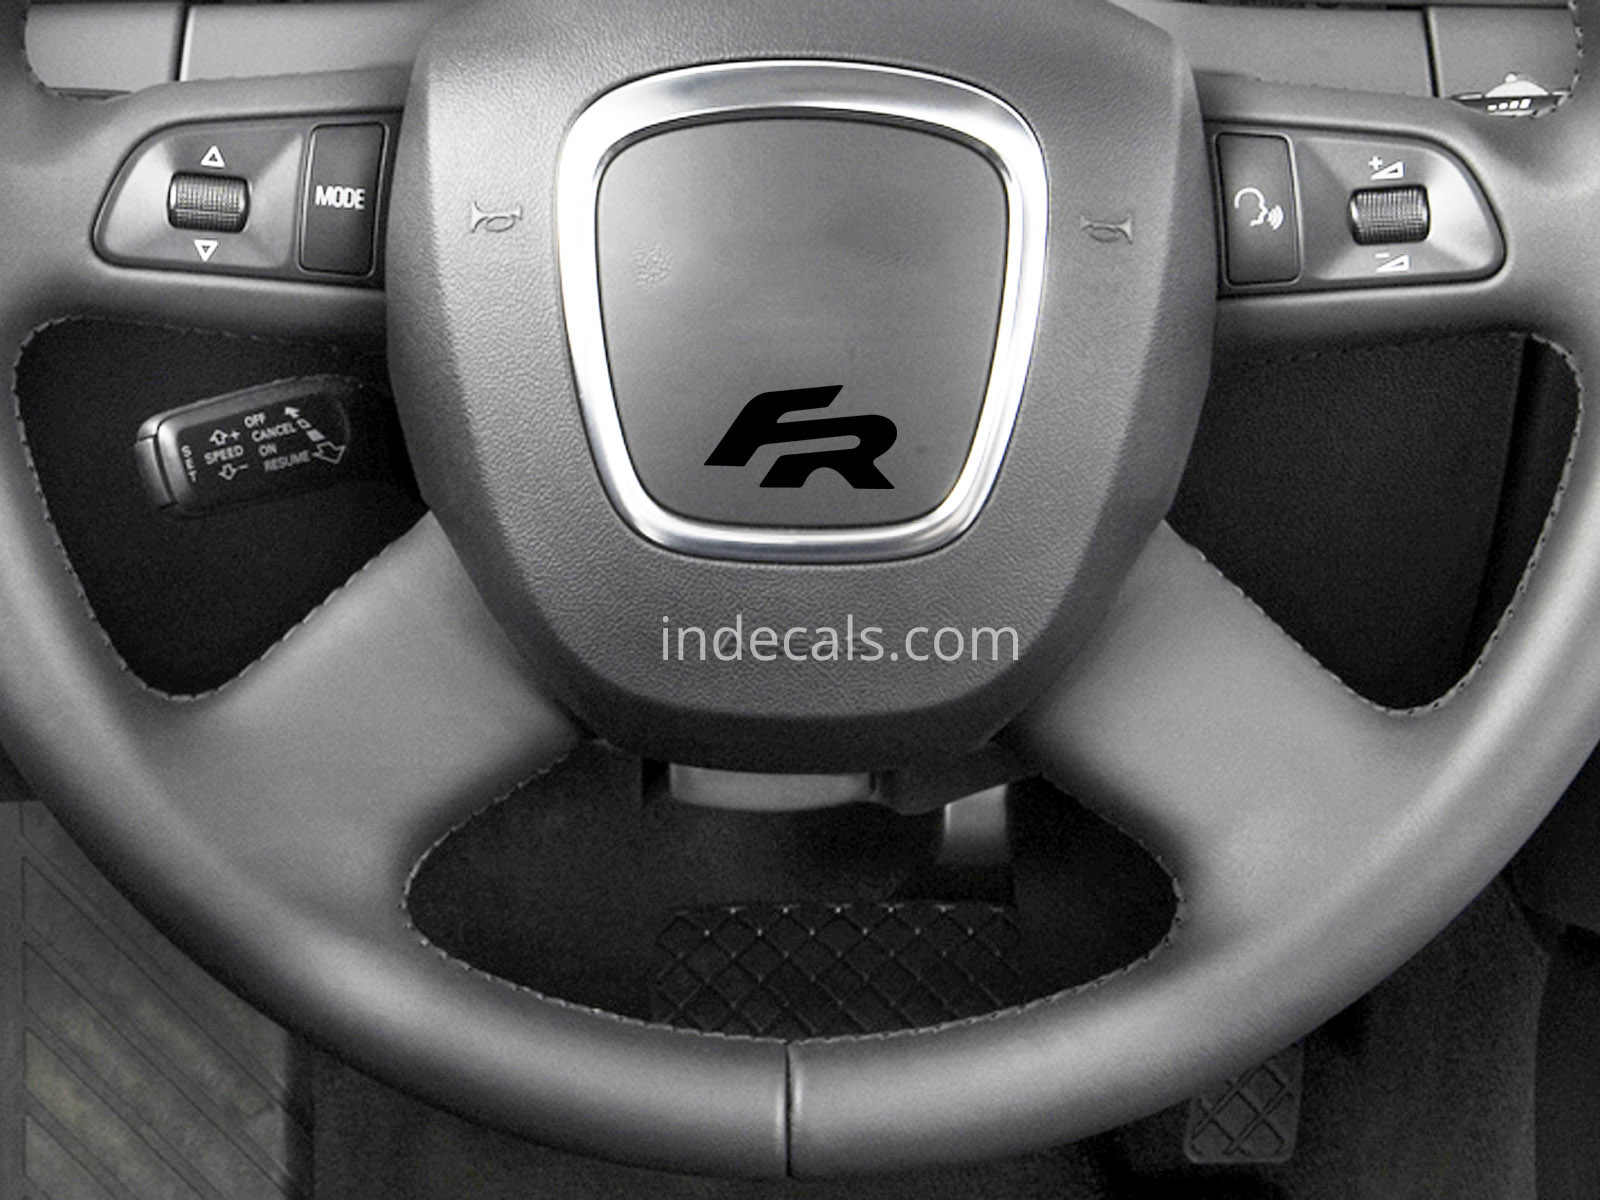 3 x Seat FR Stickers for Steering Wheel - Black